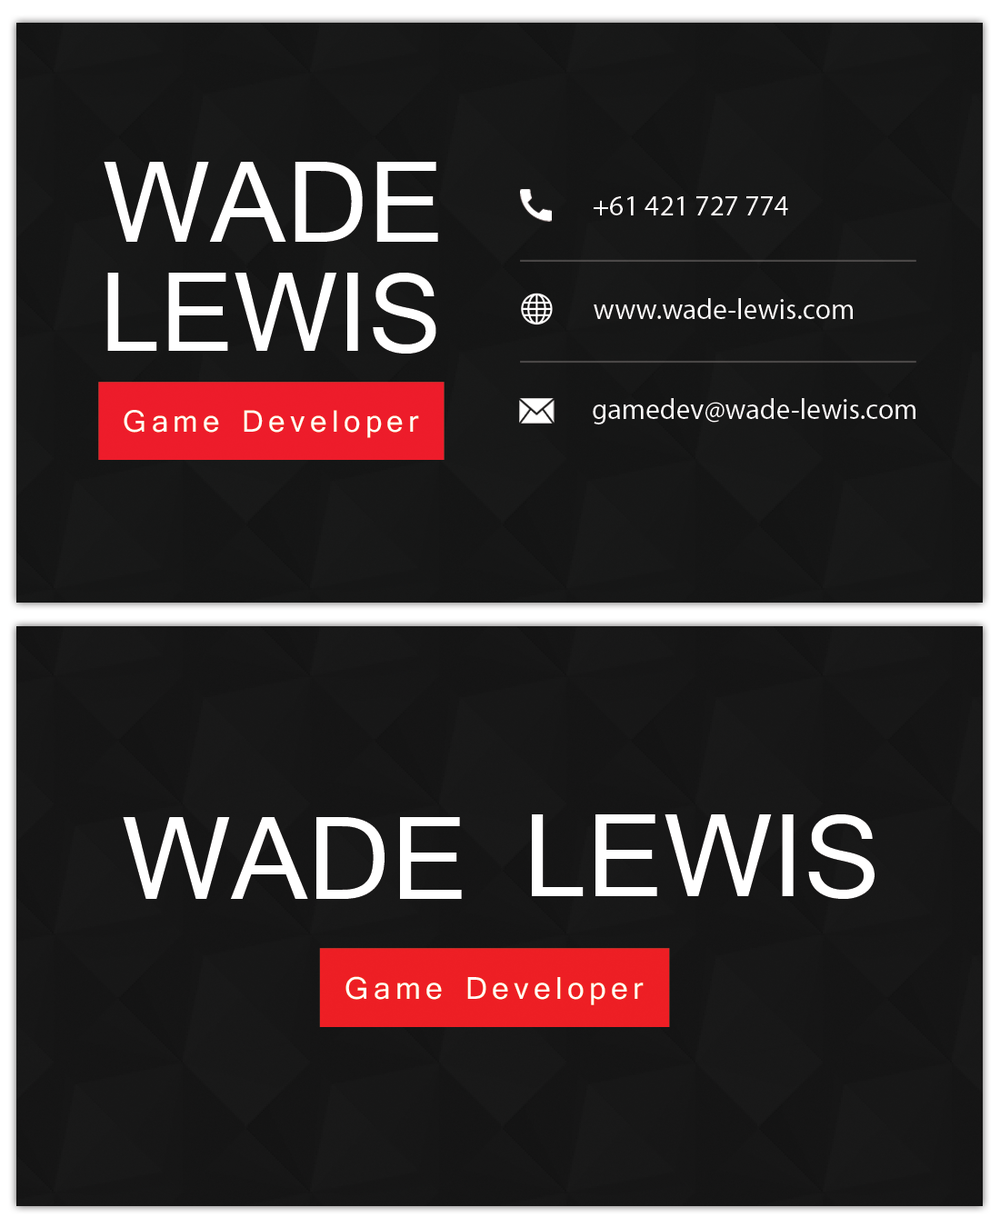 Wade Lewis business card